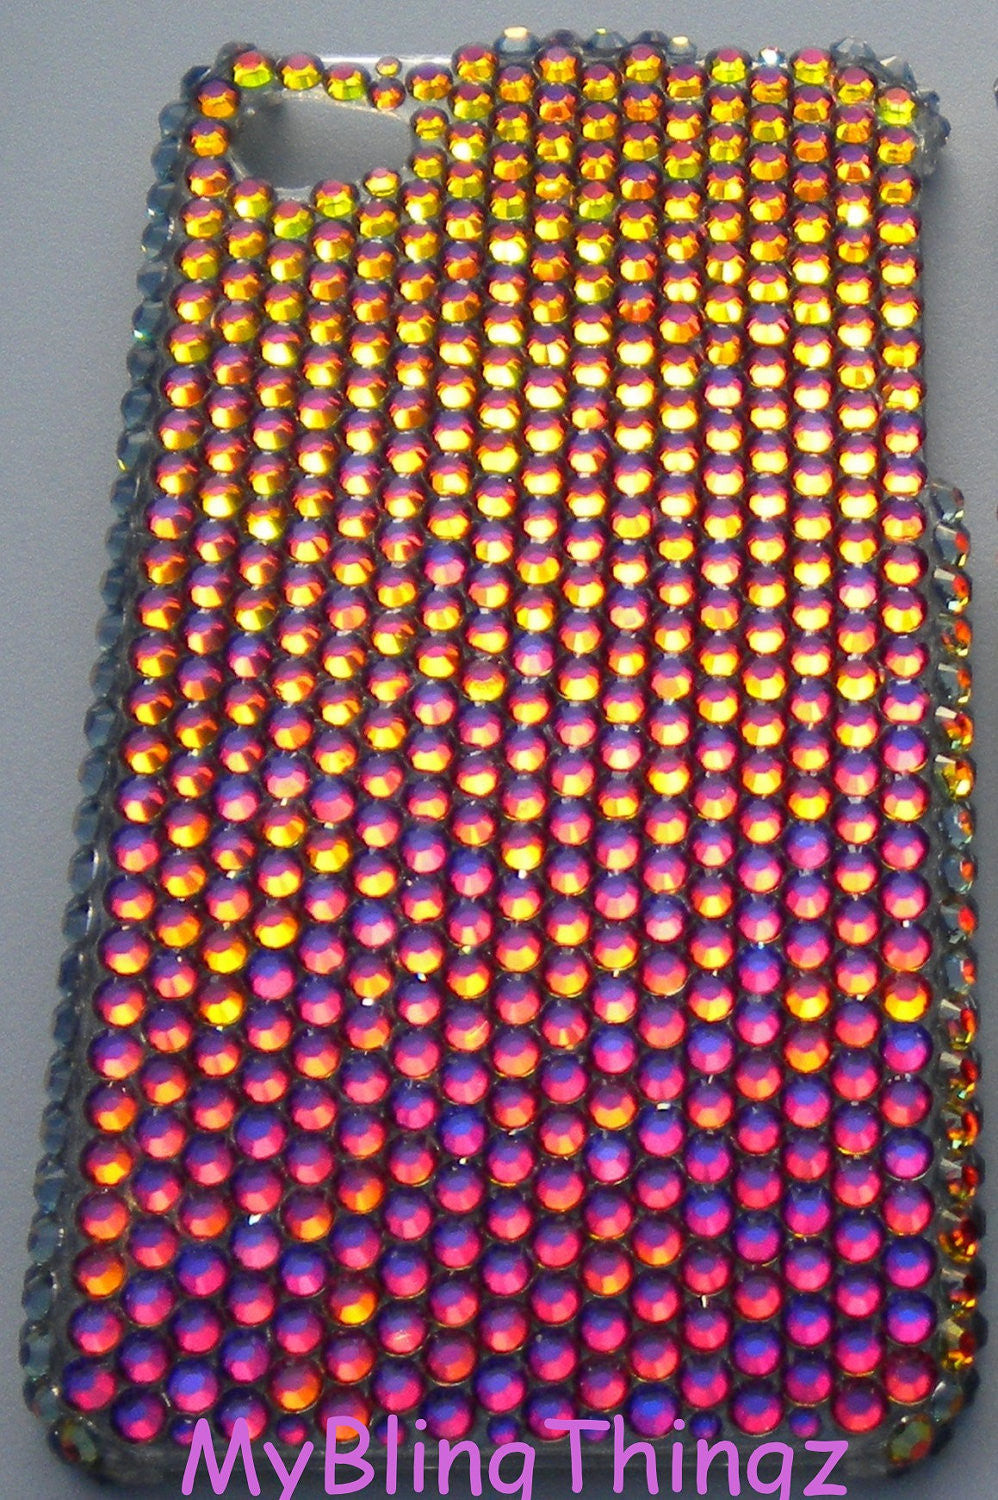 For iPhone SE 5 5S - Exquisite Multi Color Volcano Crystal Diamond Rhinestone BLING Back Case made using 100% Crystals from Swarovski